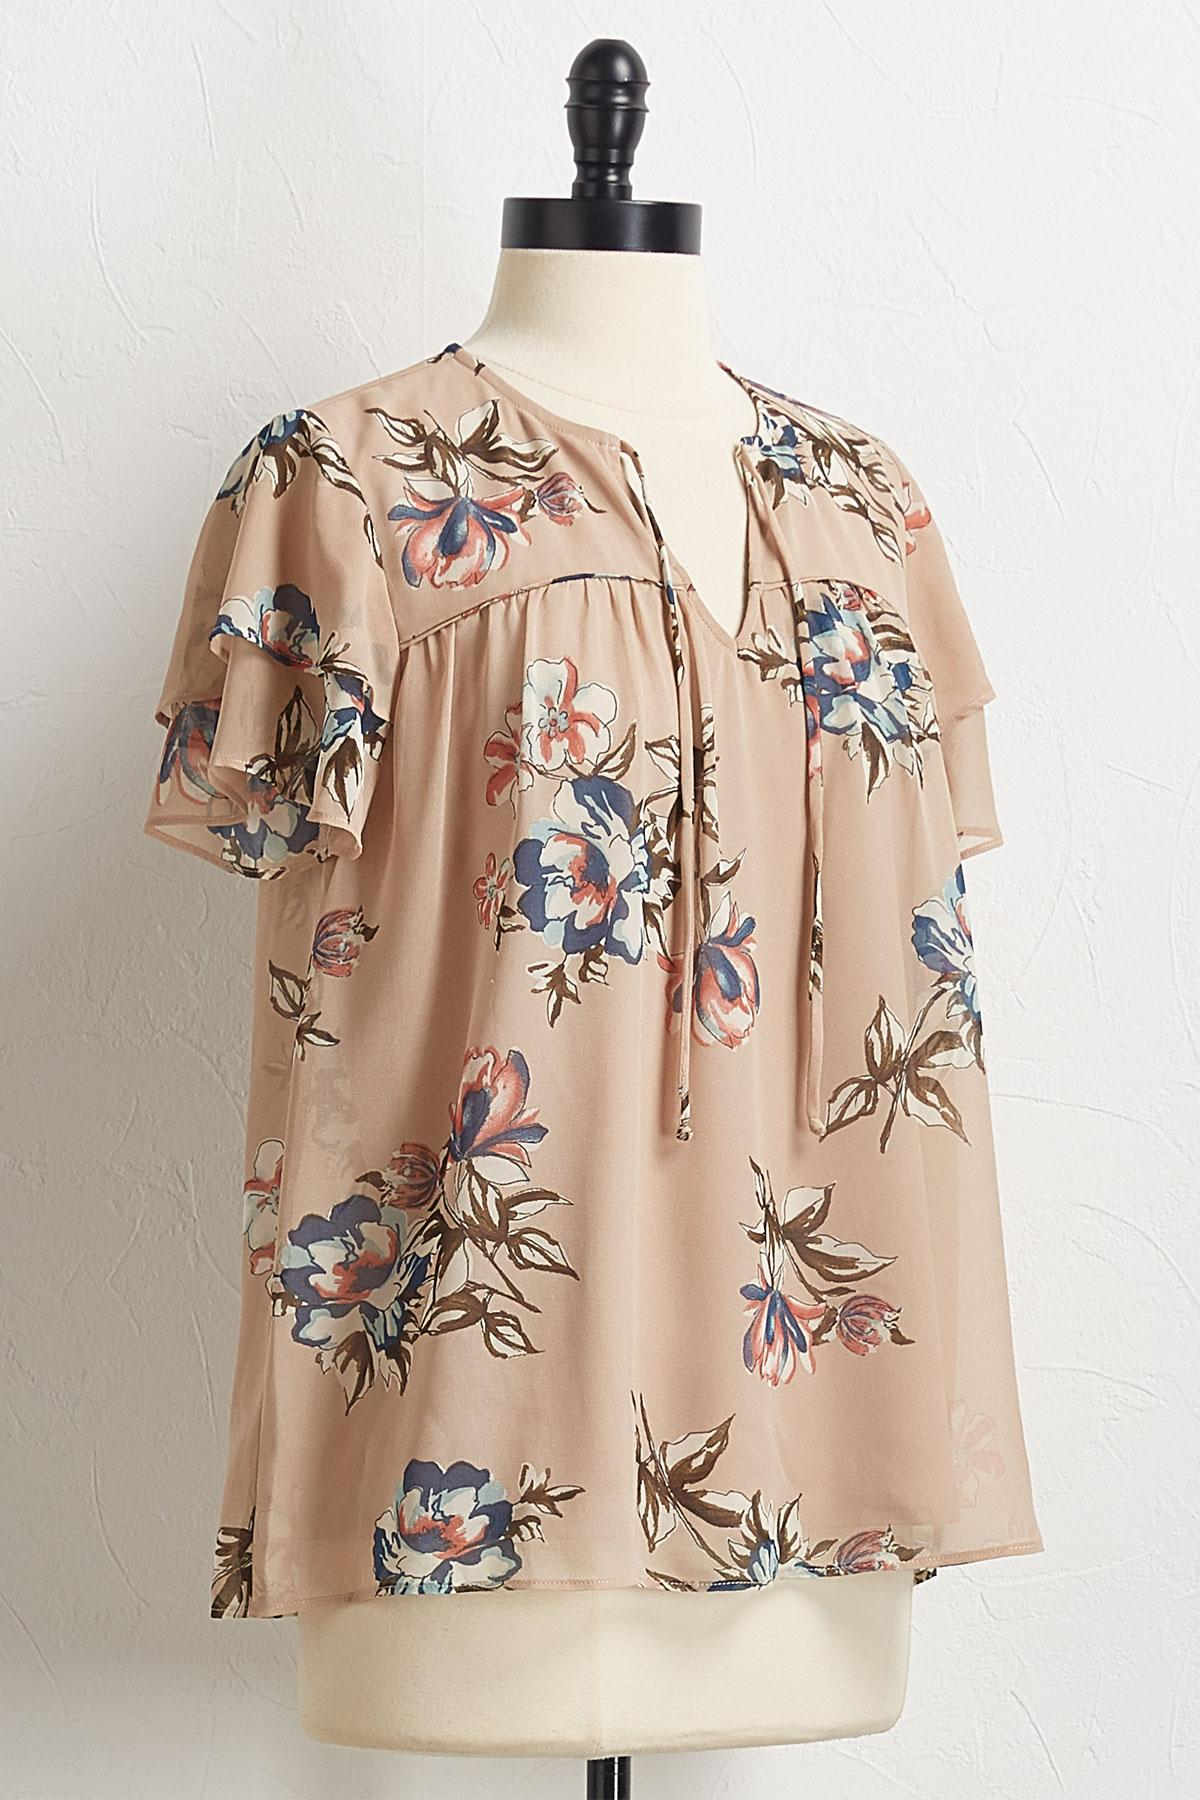 Natural Ruffled Sleeve Floral Top